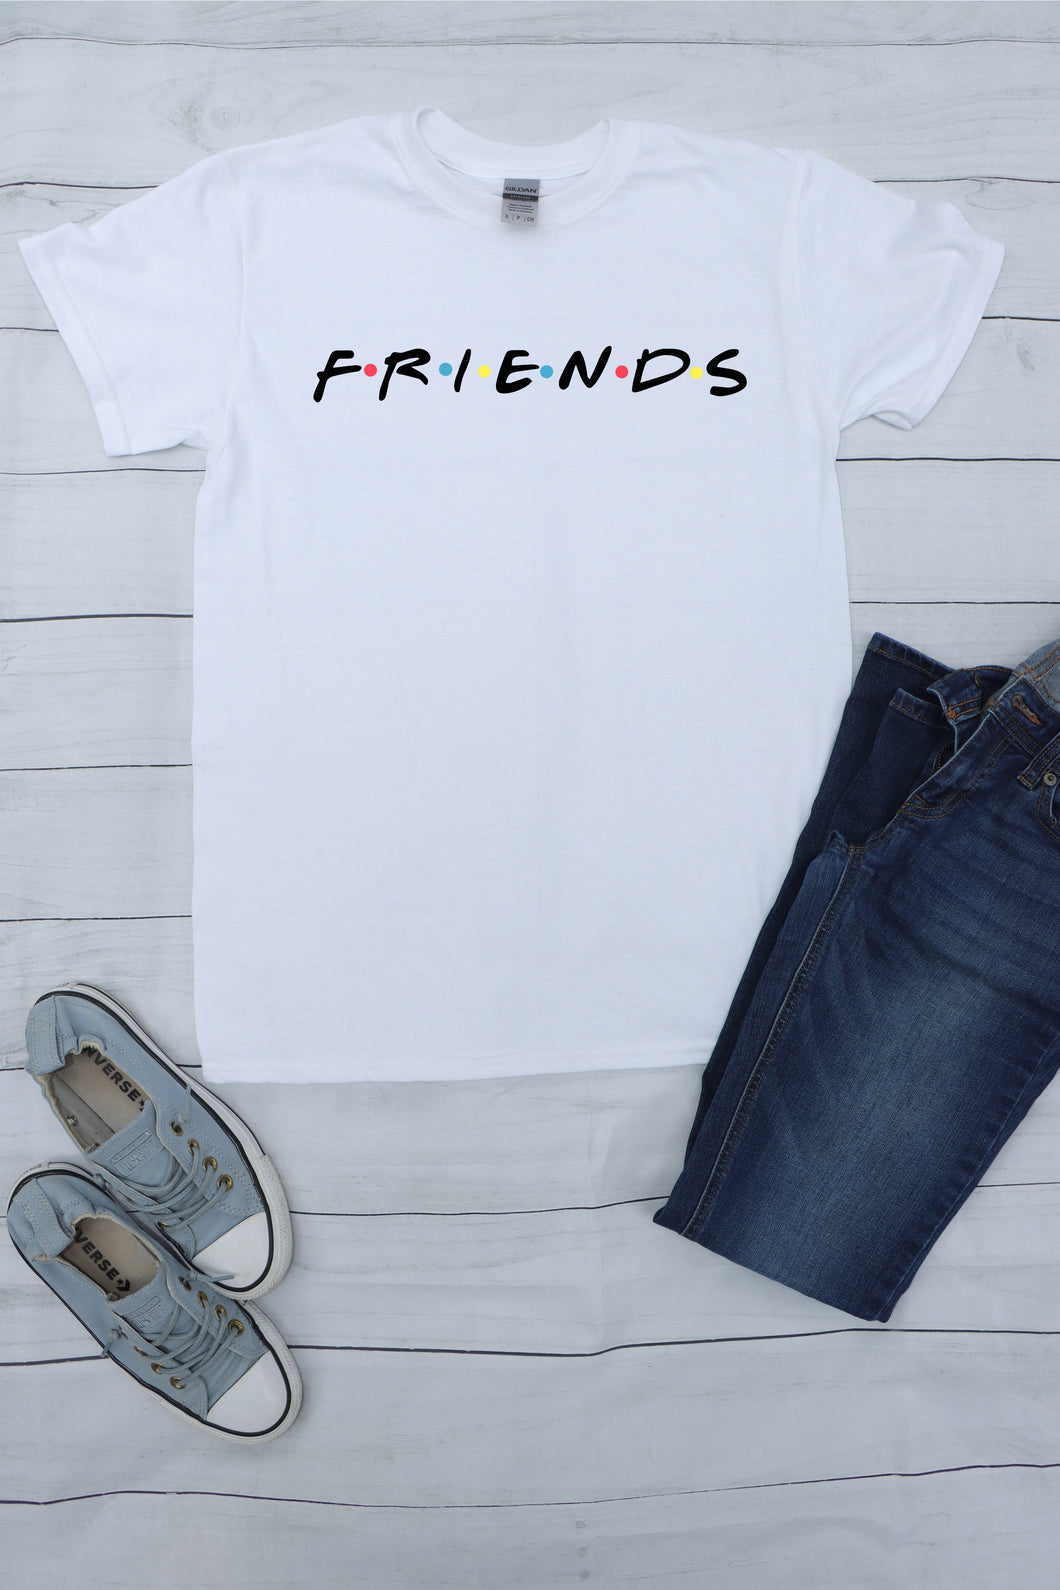 Friends S/S Shirt